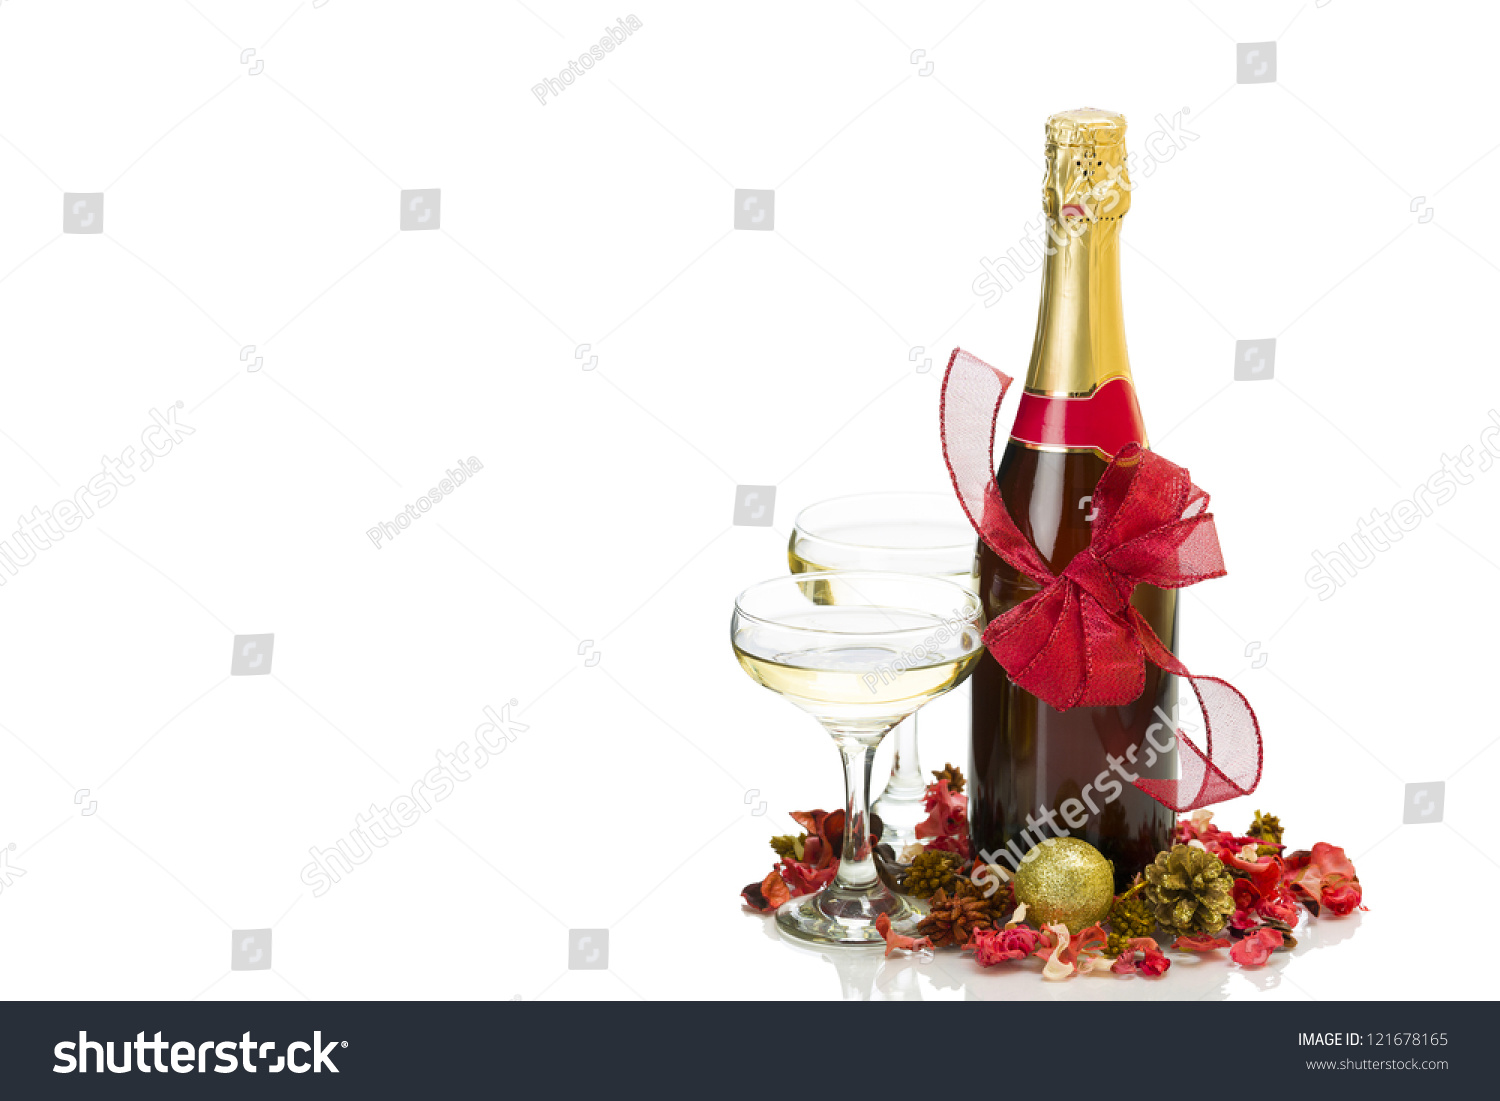 Champagne Bottle Decoration New Years Day Champagne Bottle Two Glasses And Decoration Over